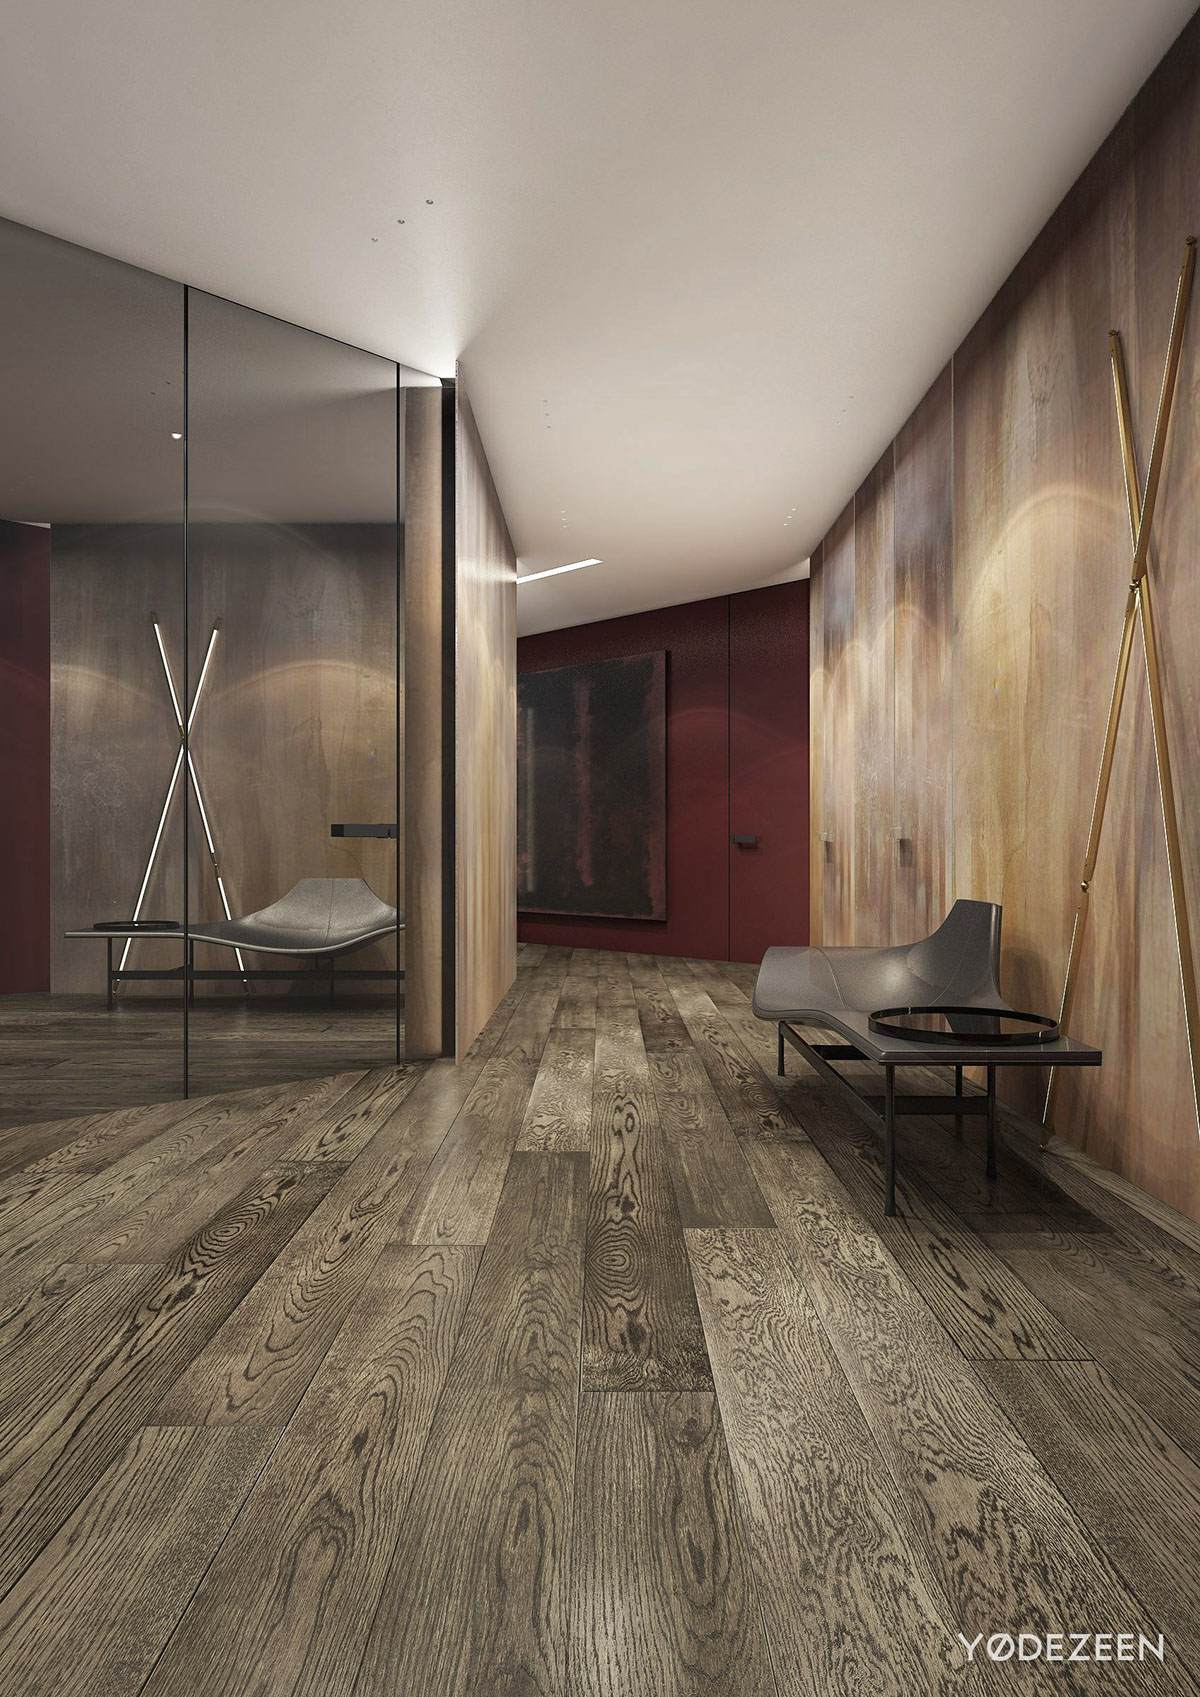 Private Wood Red And Black Hallway Design - A modern apartment with classical features